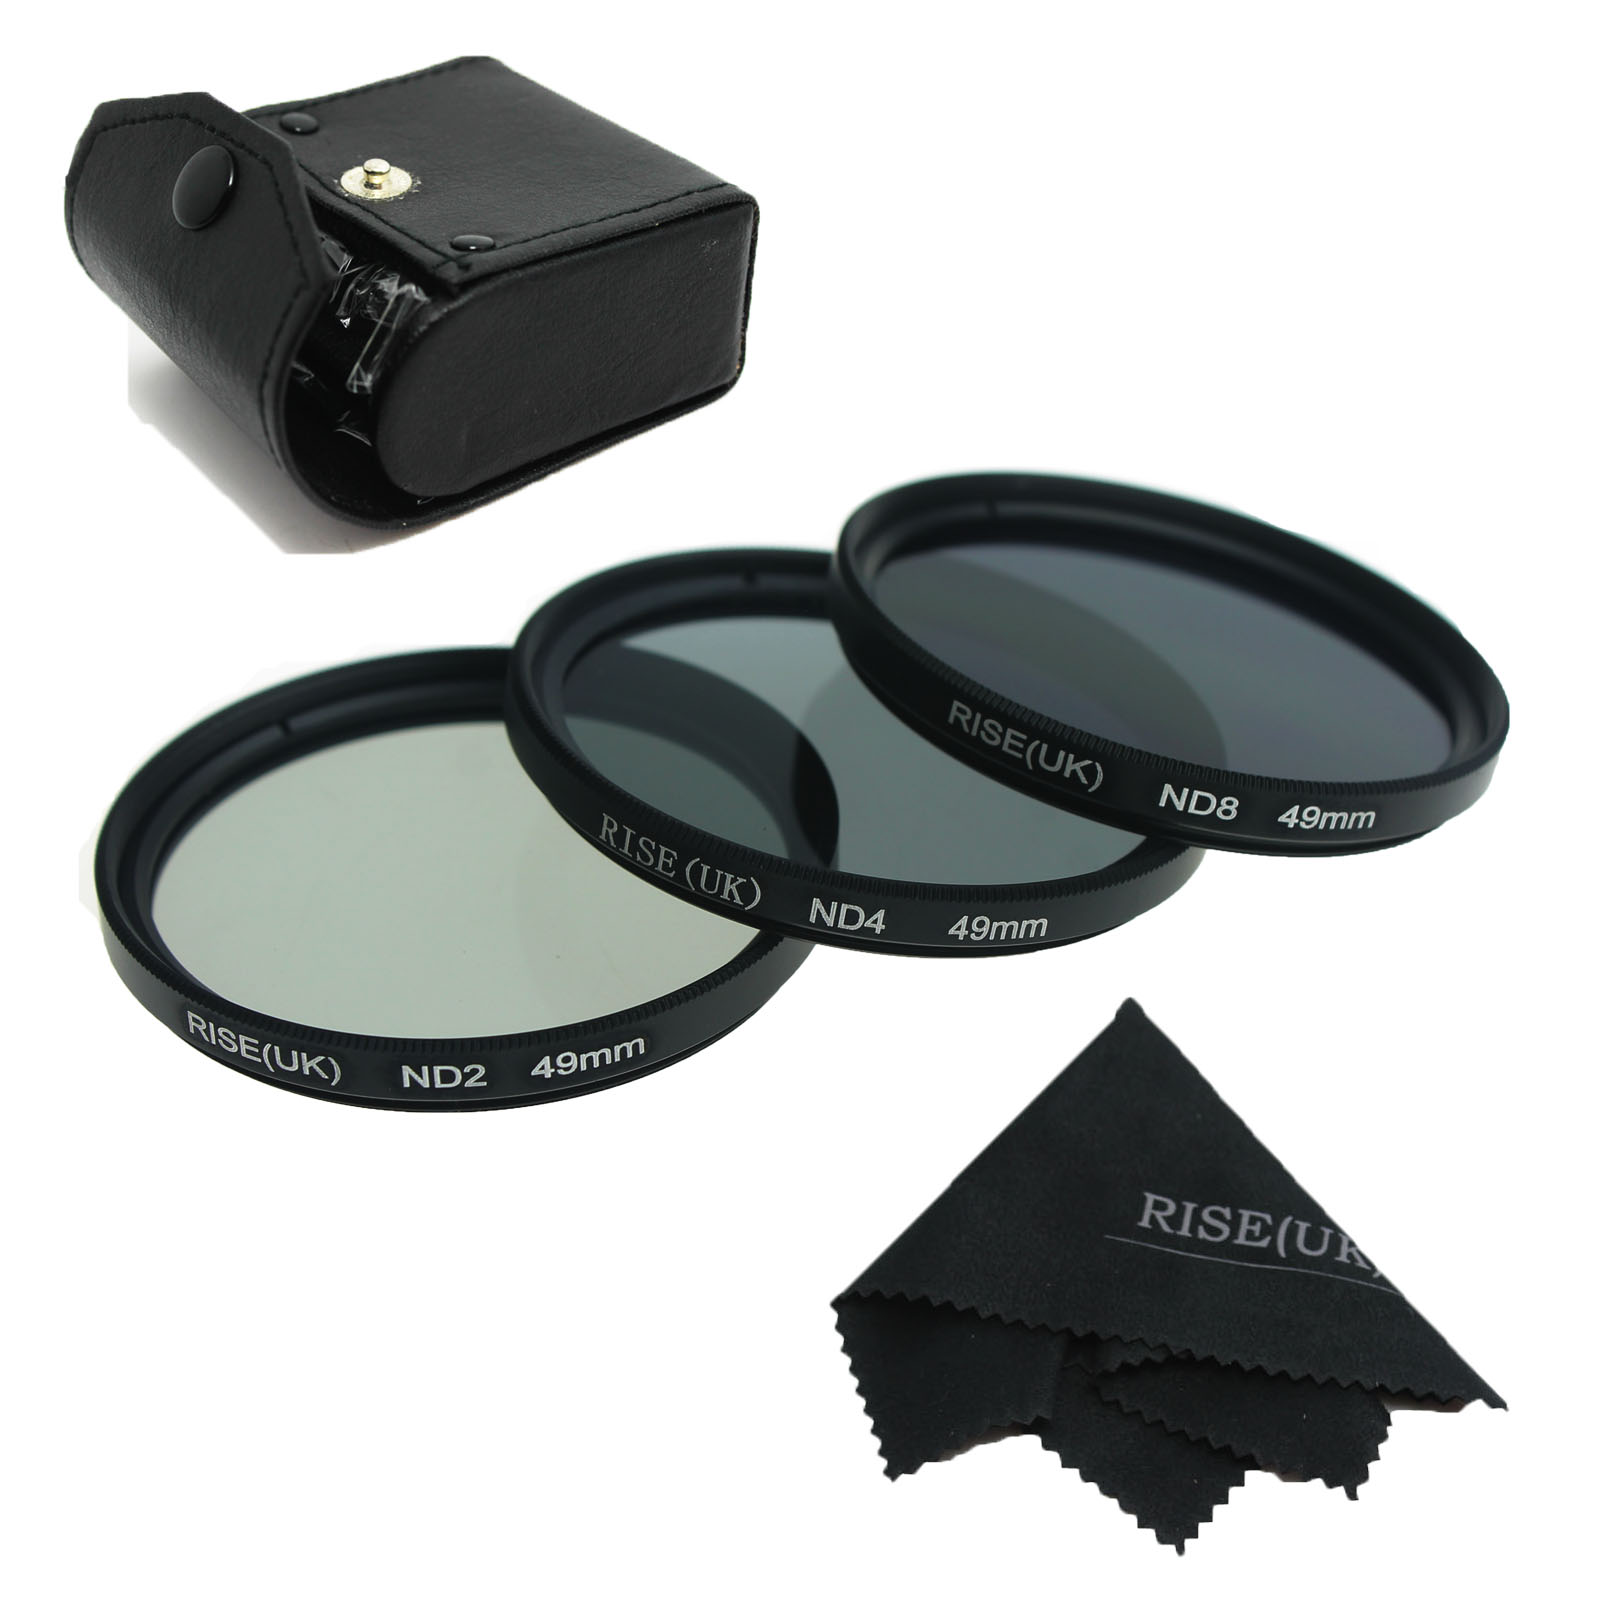 RISE(UK) 49mm 52mm 55mm 58mm 62mm 67mm 72mm 77MM Neutral Density Filter Lens Set Kit ND2 ND4 ND8 ND 2 4 8